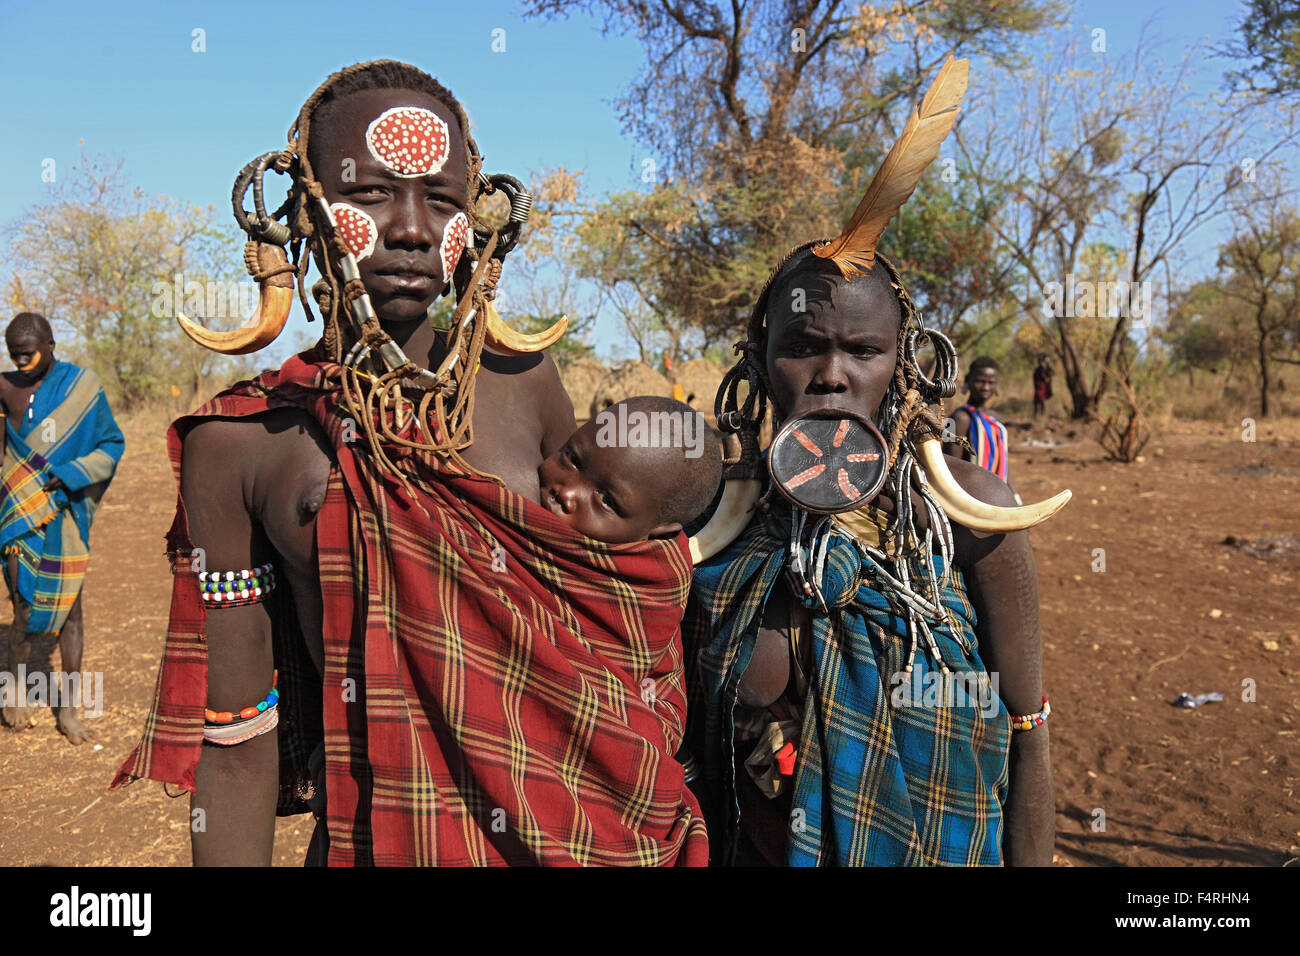 in Maco National Park, Mursi, Mursi Woman with Baby, painted skin and headdress, young Teller lip woman in the lip - Stock Image